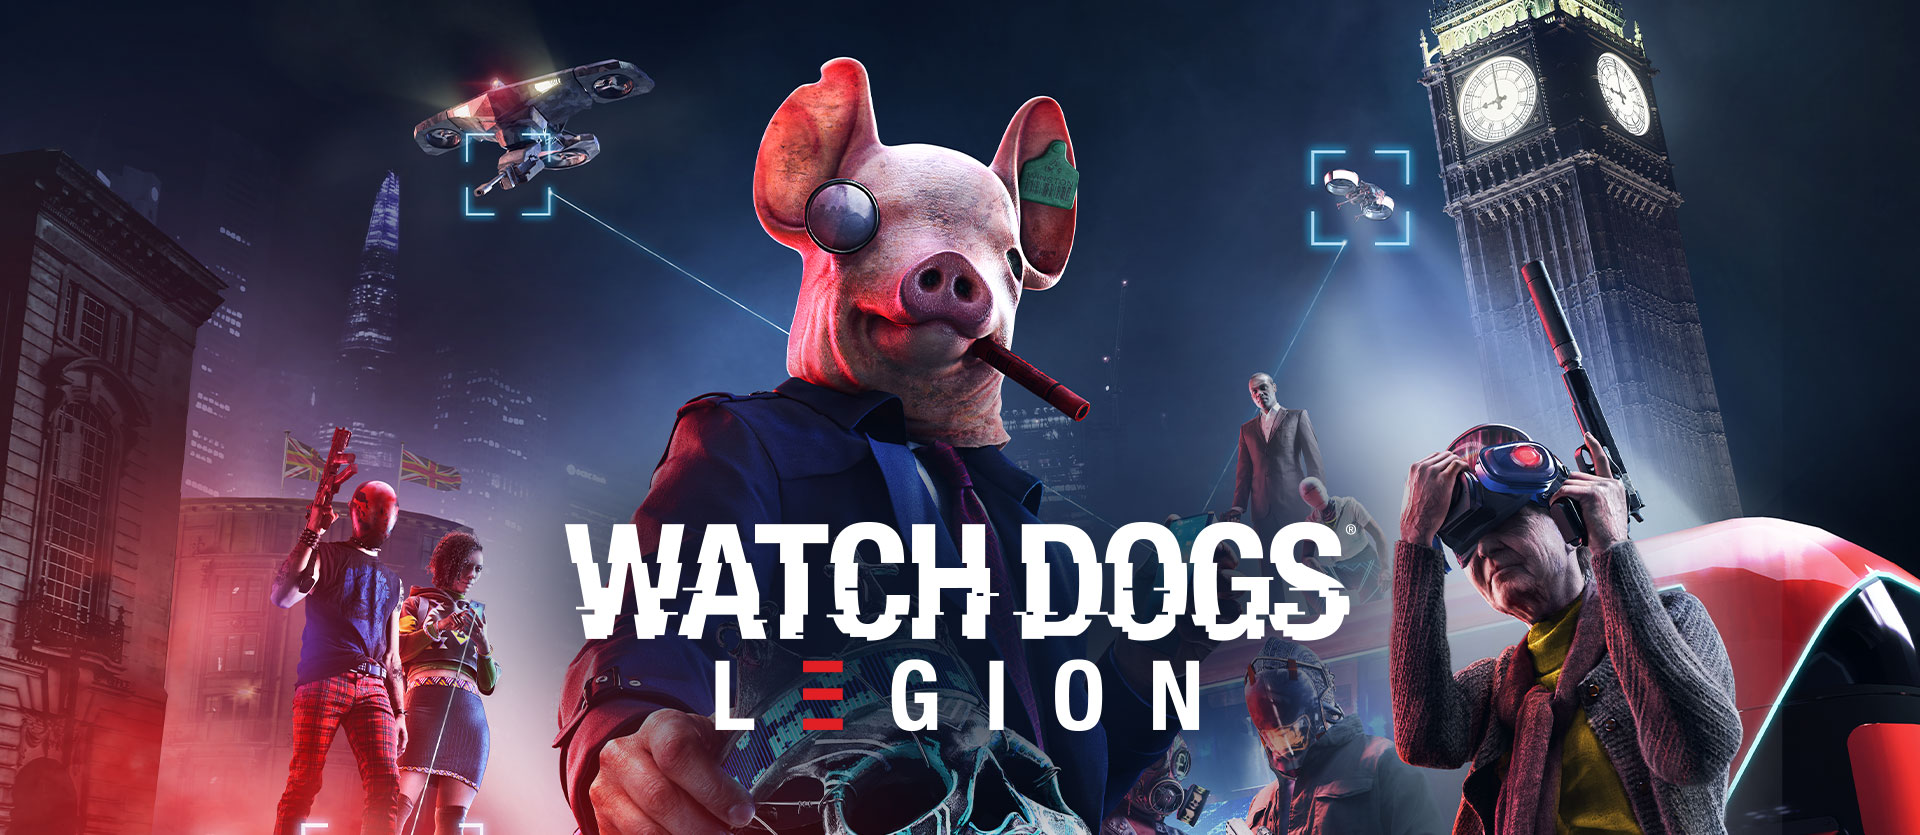 Watch Dogs Legion logo, person in a pig mask holding a skull, two drones, Big Ben, and several other characters with weapons